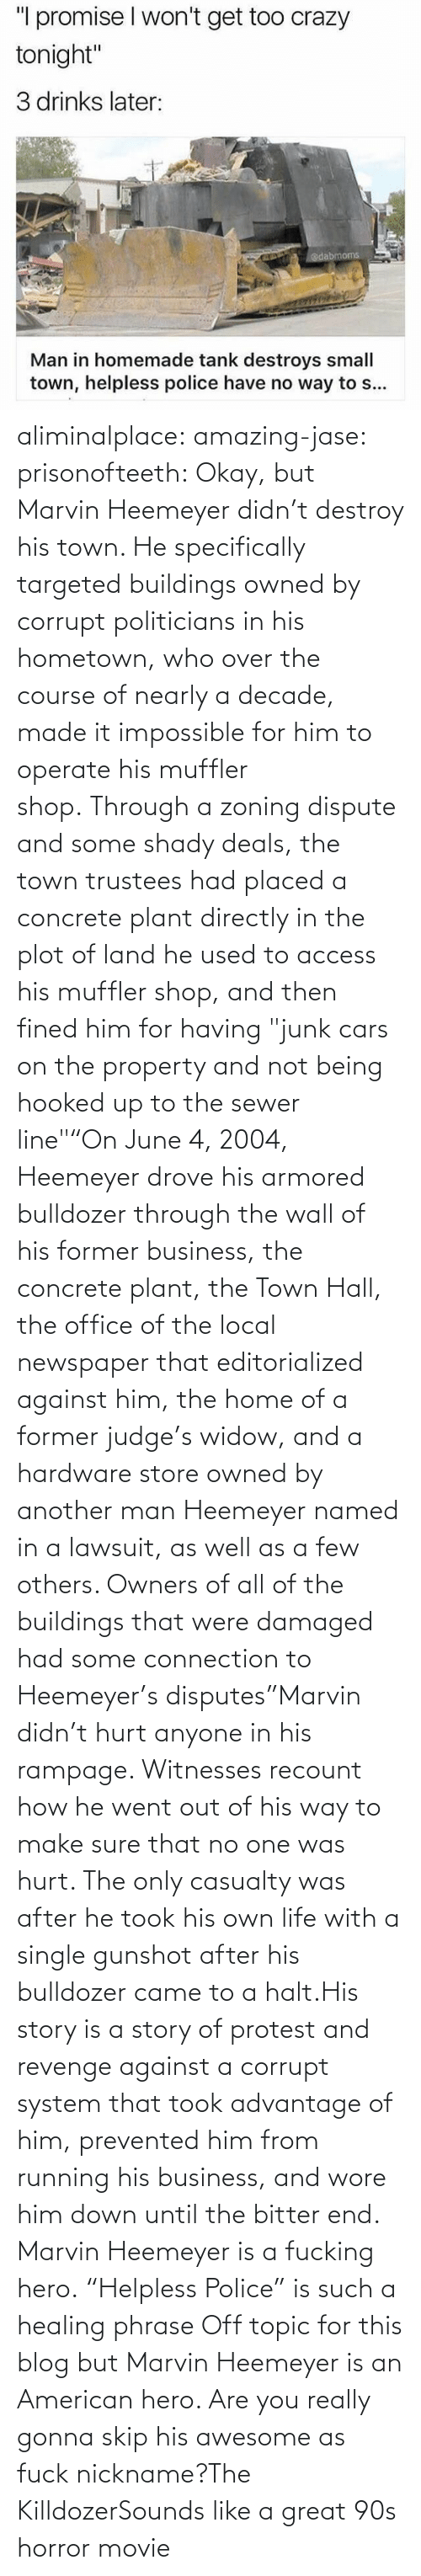 "Skip: aliminalplace: amazing-jase:  prisonofteeth: Okay, but Marvin Heemeyer didn't destroy his town. He specifically targeted buildings owned by corrupt politicians in his hometown, who over the course of nearly a decade, made it impossible for him to operate his muffler shop. Through a zoning dispute and some shady deals, the town trustees had placed a concrete plant directly in the plot of land he used to access his muffler shop, and then fined him for having ""junk cars on the property and not being hooked up to the sewer line""""On June 4, 2004, Heemeyer drove his armored bulldozer through the wall of his former business, the concrete plant, the Town Hall, the office of the local newspaper that editorialized against him, the home of a former judge's widow, and a hardware store owned by another man Heemeyer named in a lawsuit, as well as a few others. Owners of all of the buildings that were damaged had some connection to Heemeyer's disputes""Marvin didn't hurt anyone in his rampage. Witnesses recount how he went out of his way to make sure that no one was hurt. The only casualty was after he took his own life with a single gunshot after his bulldozer came to a halt.His story is a story of protest and revenge against a corrupt system that took advantage of him, prevented him from running his business, and wore him down until the bitter end. Marvin Heemeyer is a fucking hero. ""Helpless Police"" is such a healing phrase    Off topic for this blog but Marvin Heemeyer is an American hero.     Are you really gonna skip his awesome as fuck nickname?The KilldozerSounds like a great 90s horror movie"